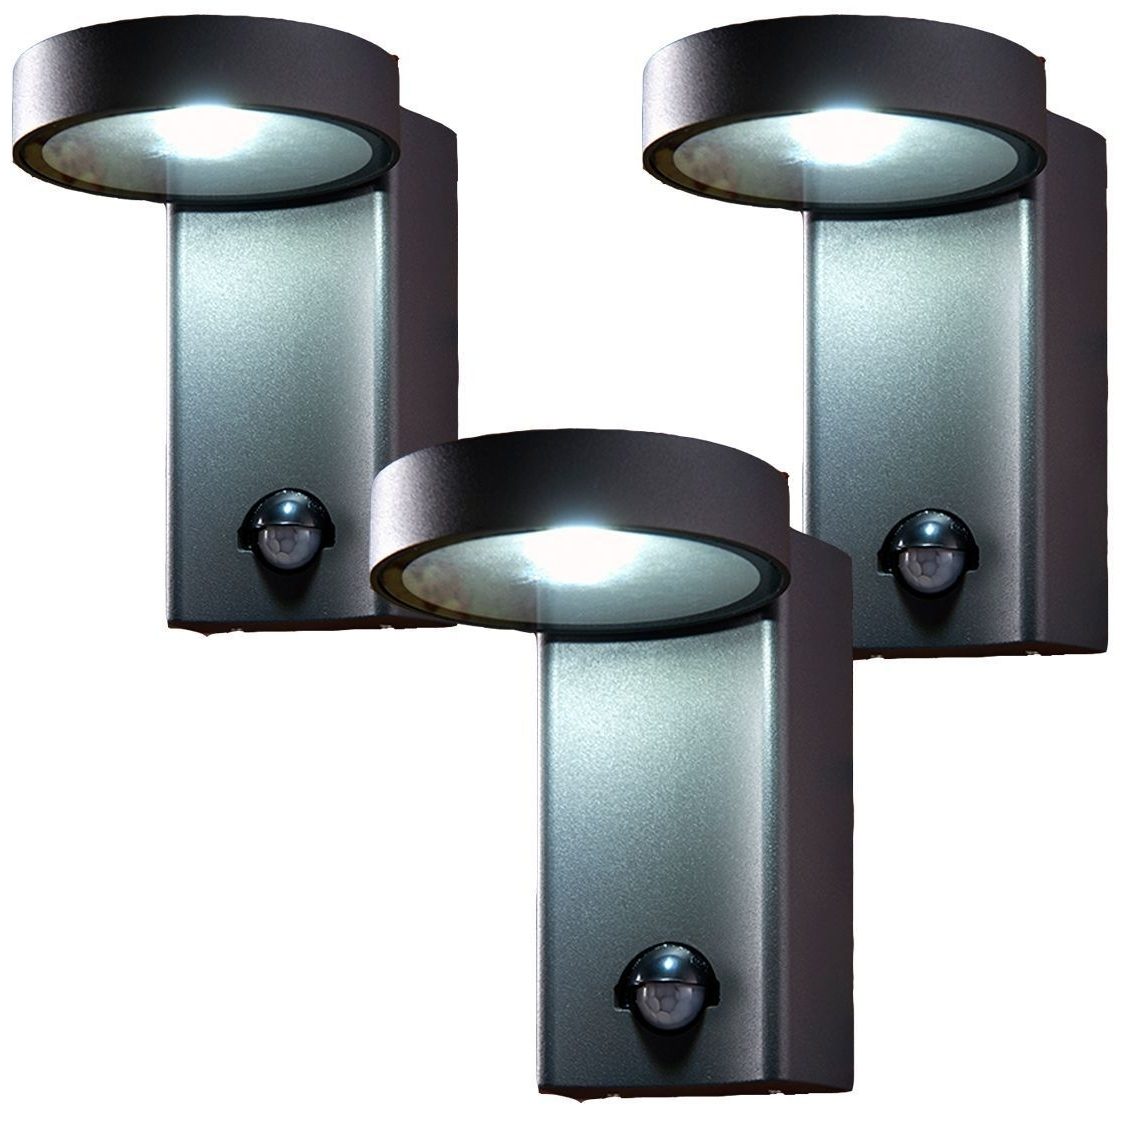 3 X Saxby 67696 Oreti Pir Dark Matt Anthracite 10W Ip44 Outdoor Wall Regarding Fashionable Outdoor Pir Wall Lights (Gallery 11 of 20)